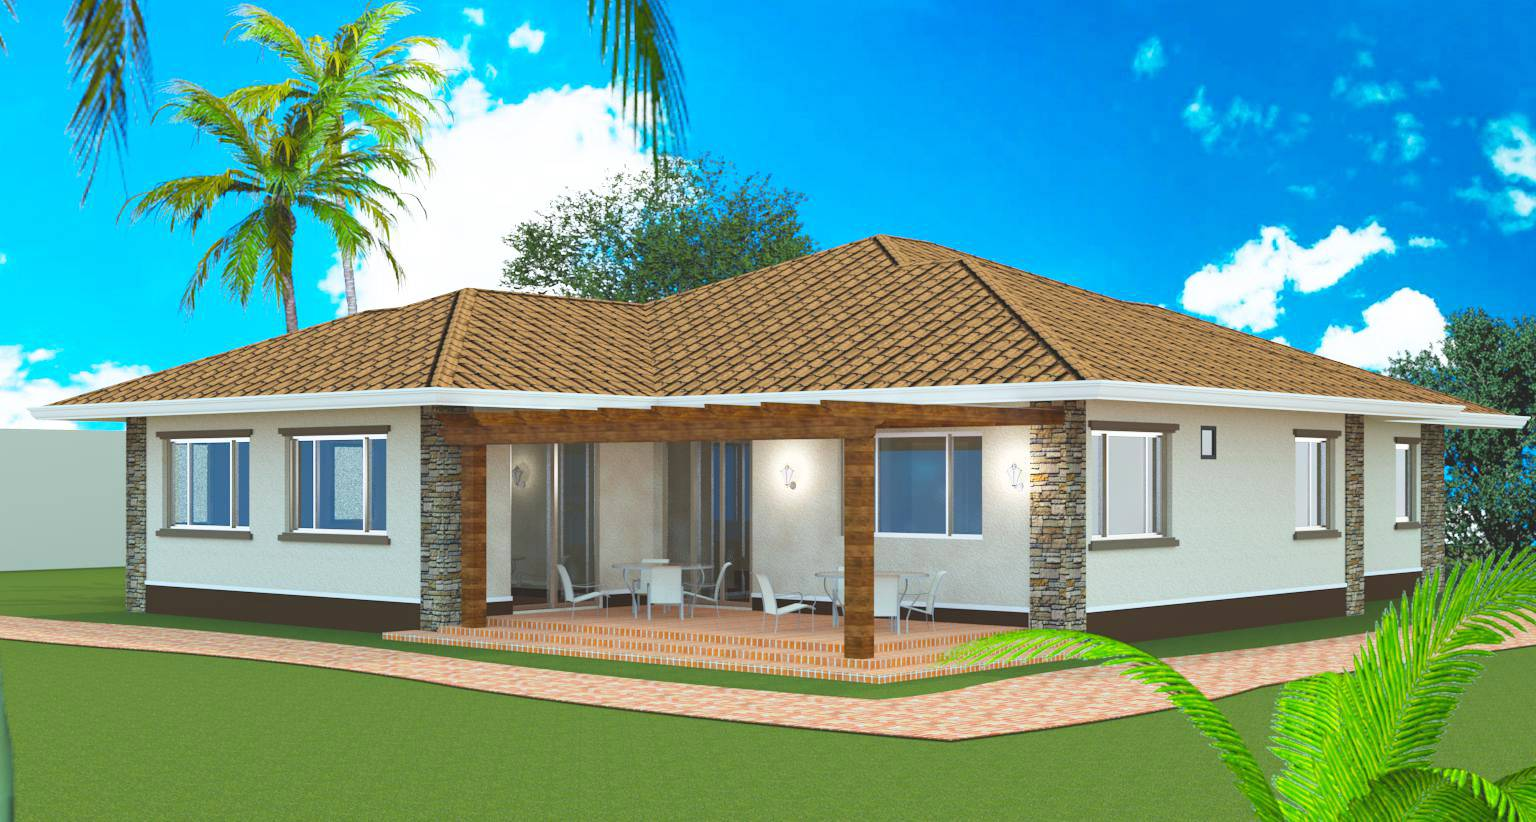 Model Bedroom Bungalow Design Negros Construction